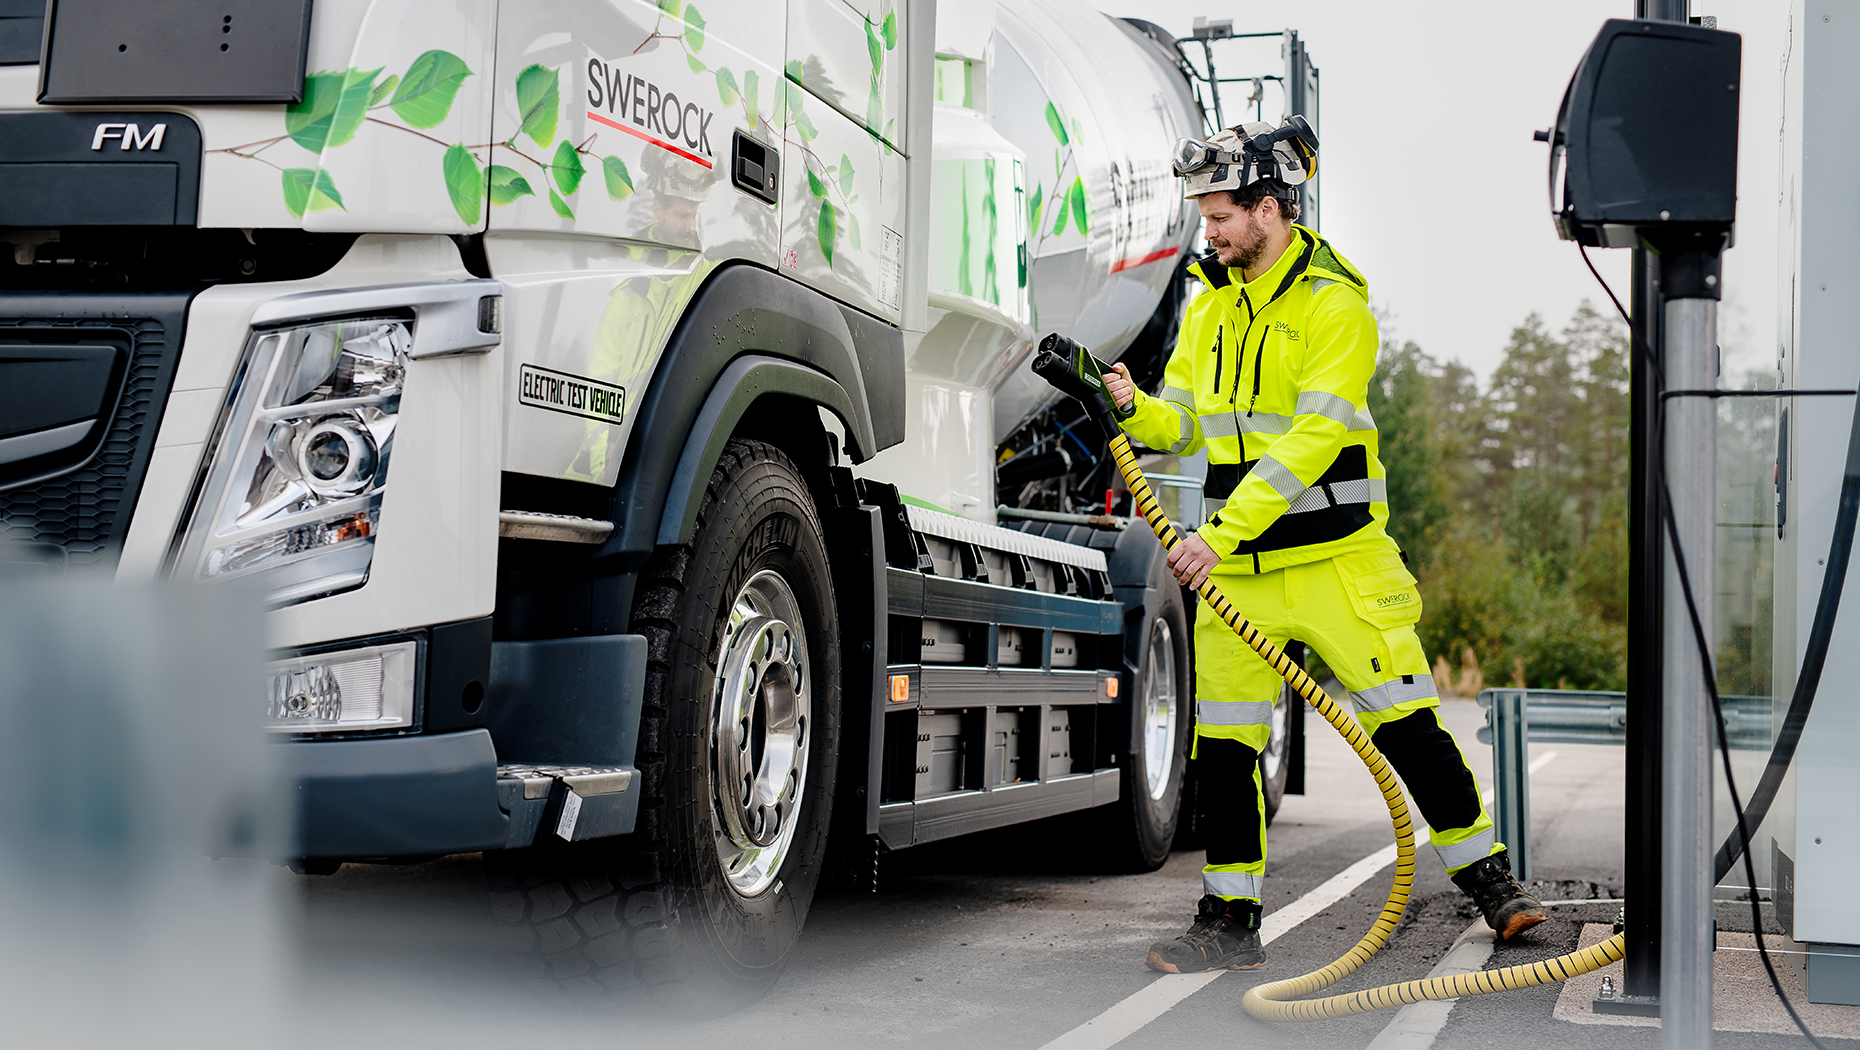 The live test collaboration between Volvo Trucks and Swerock will feature two fully electric construction trucks: a Volvo FM and a Volvo FMX.